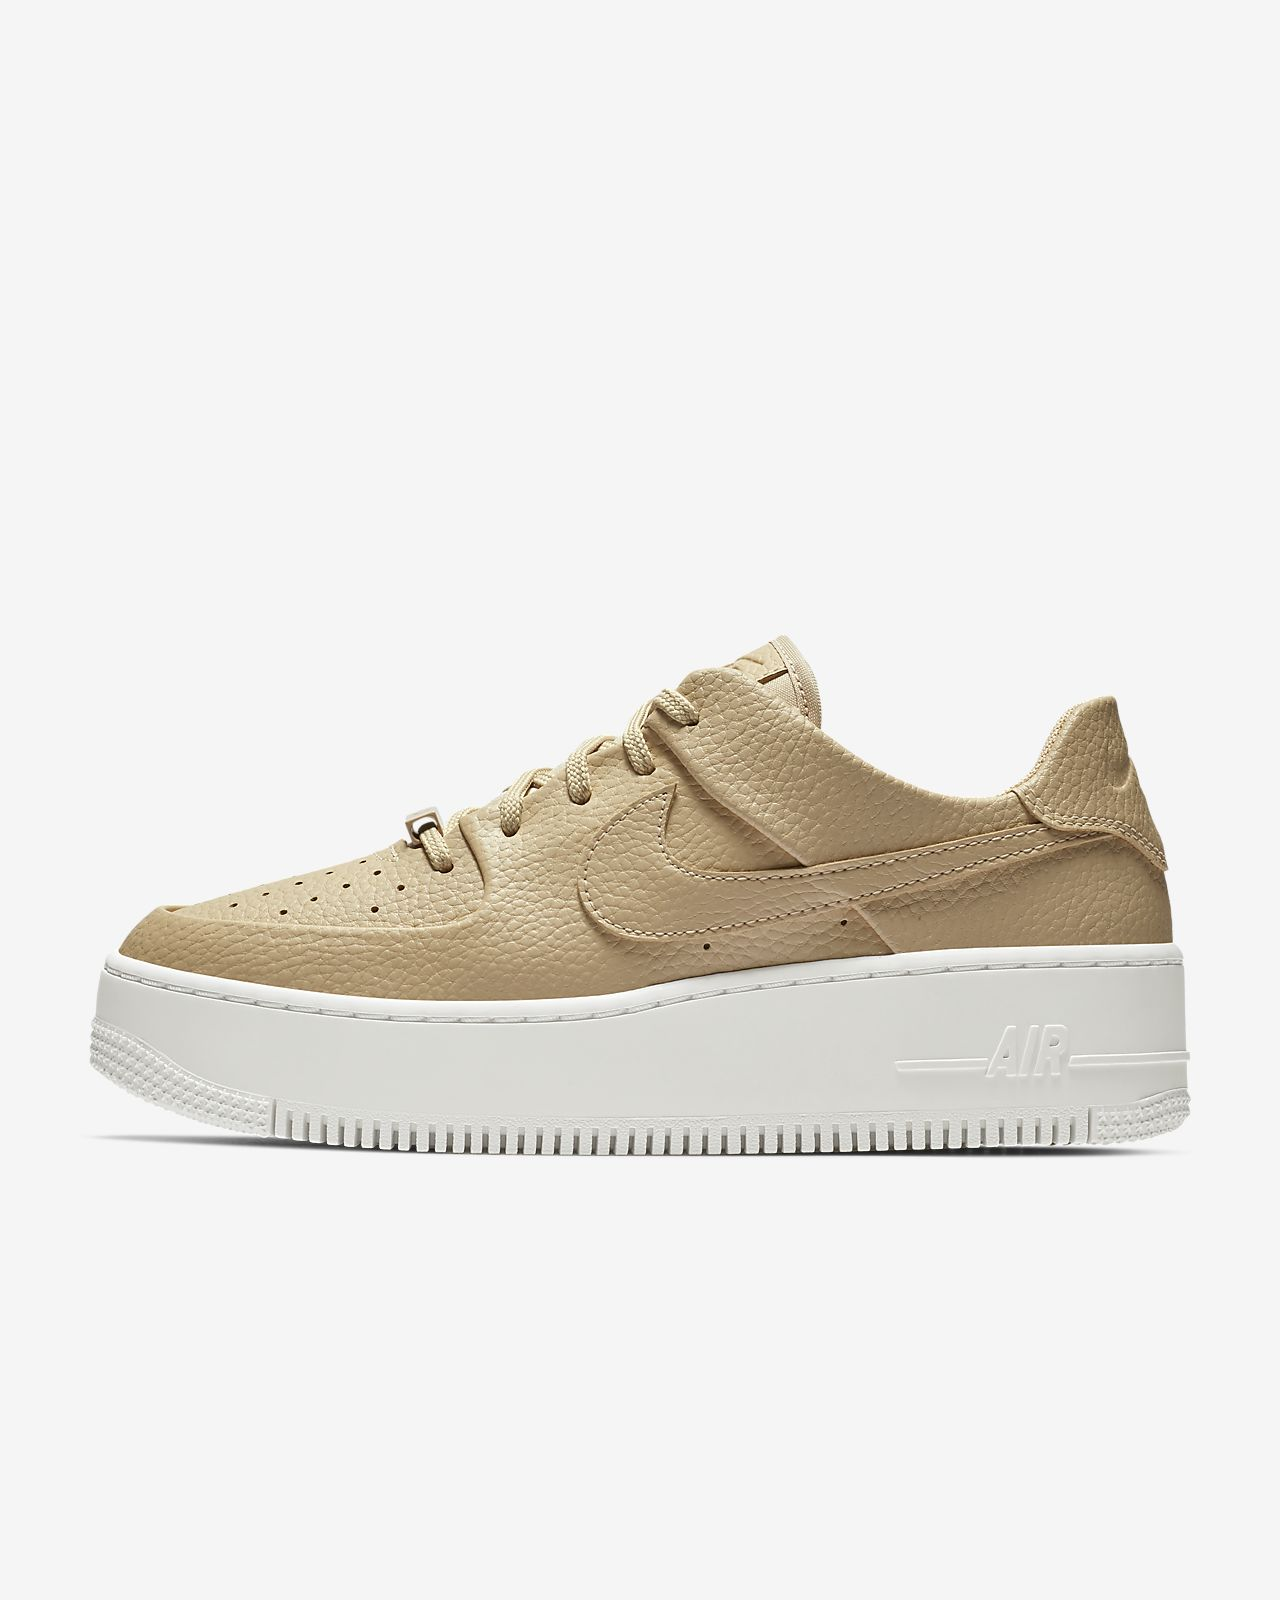 Skon Nike Air Force 1 Sage Low för kvinnor